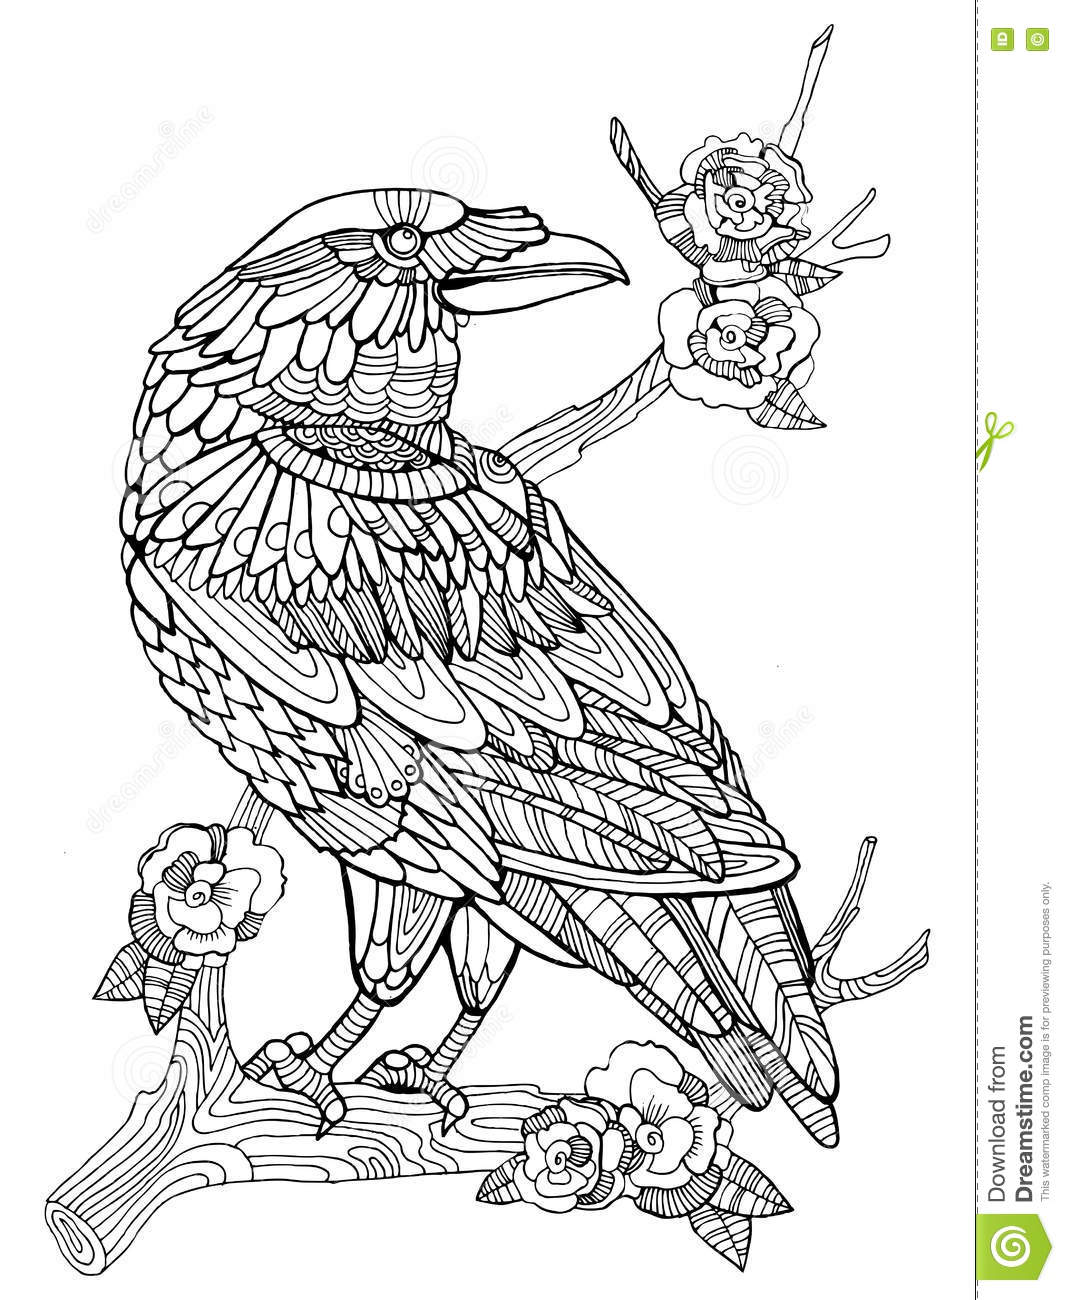 Crow Bird Coloring Book For Adults Vector Stock Vector - Image ...